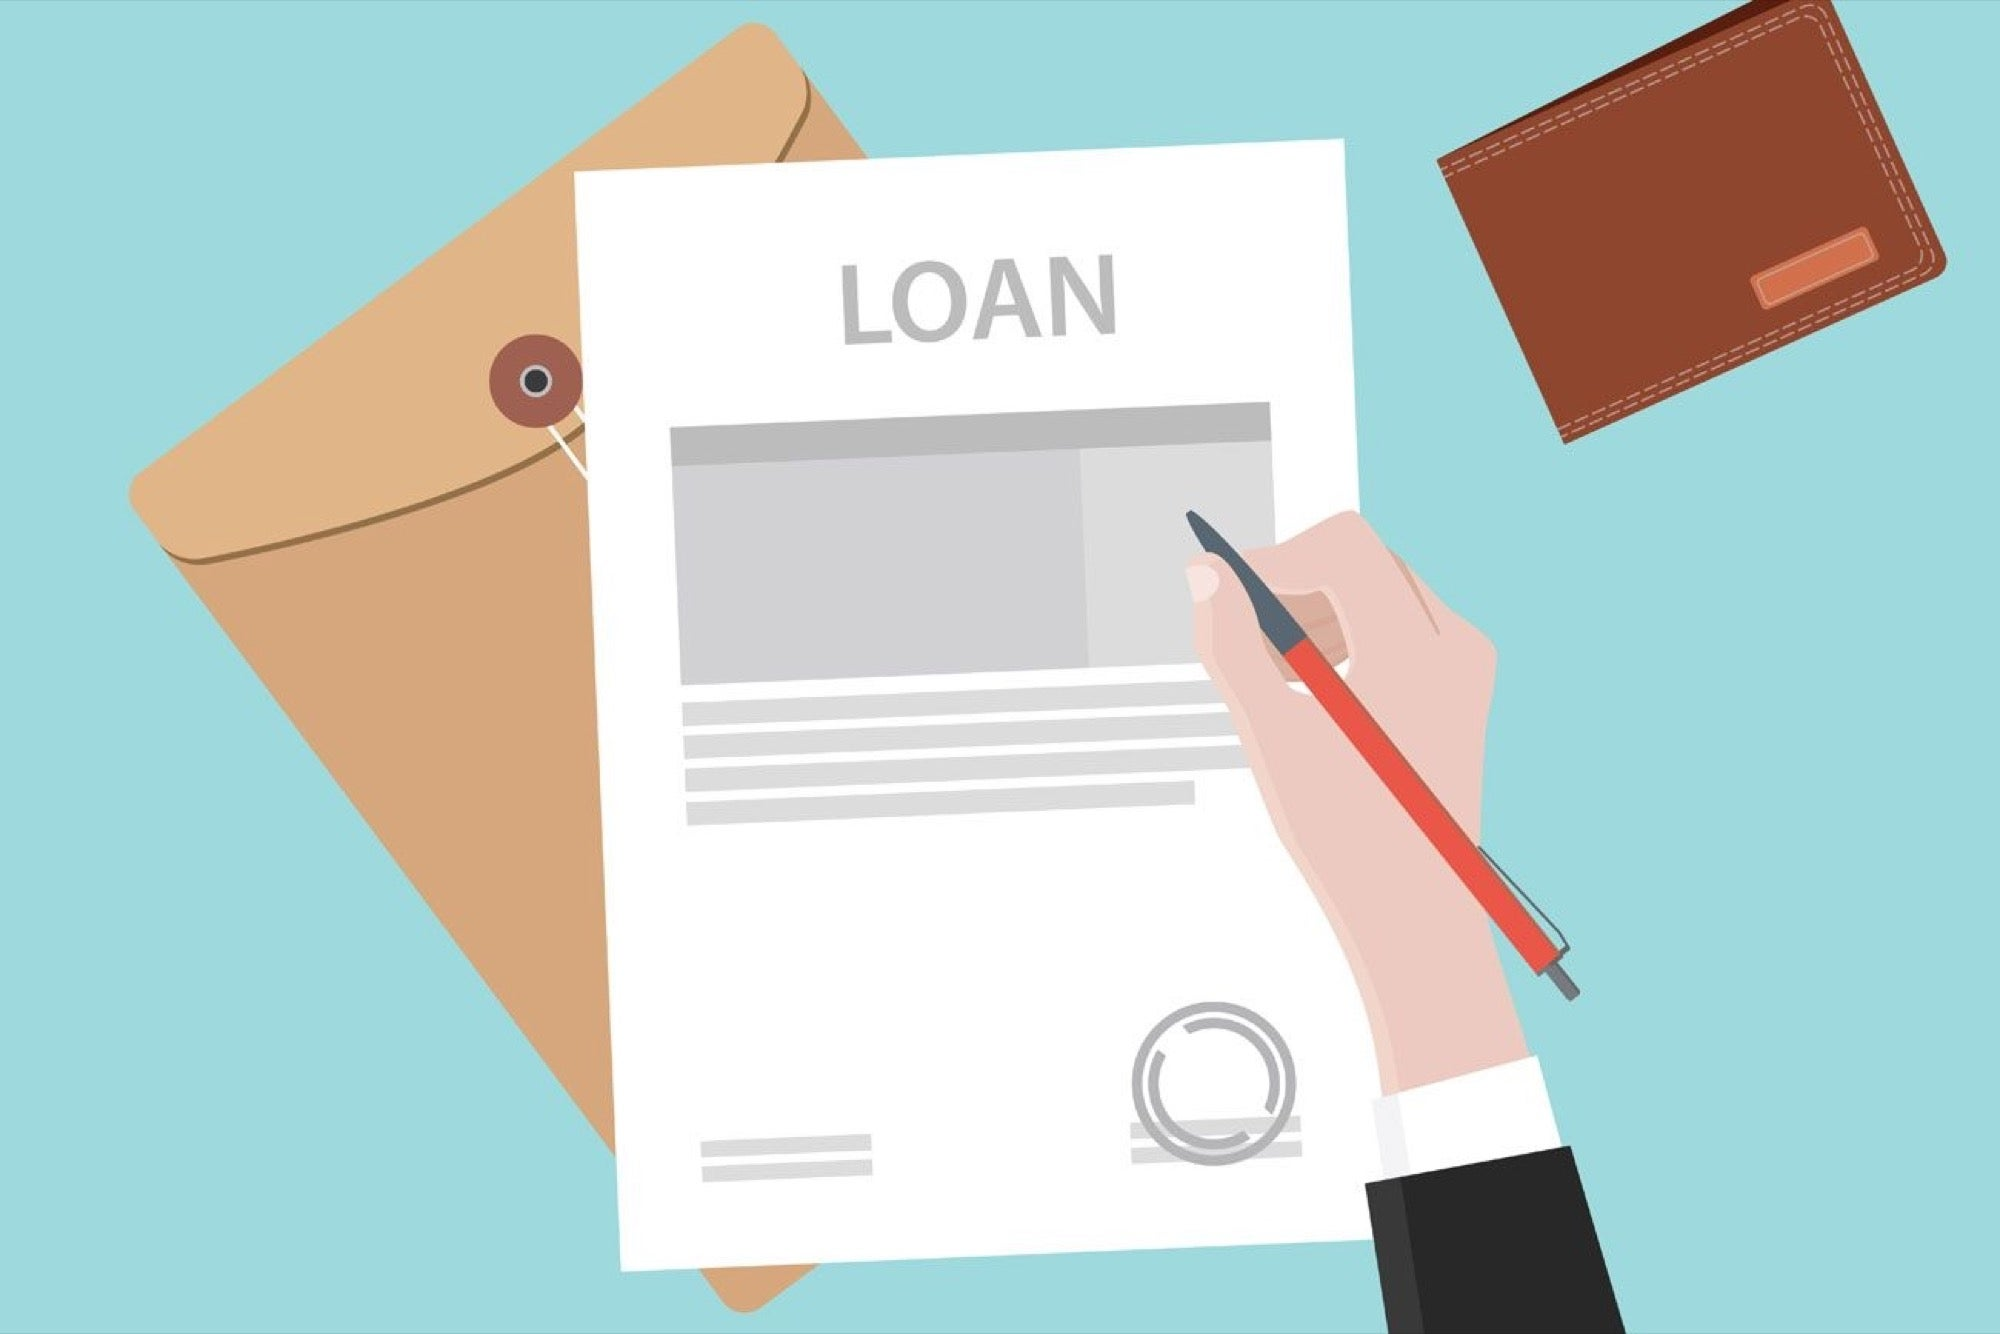 10 Simple Steps to Get a Business Loan